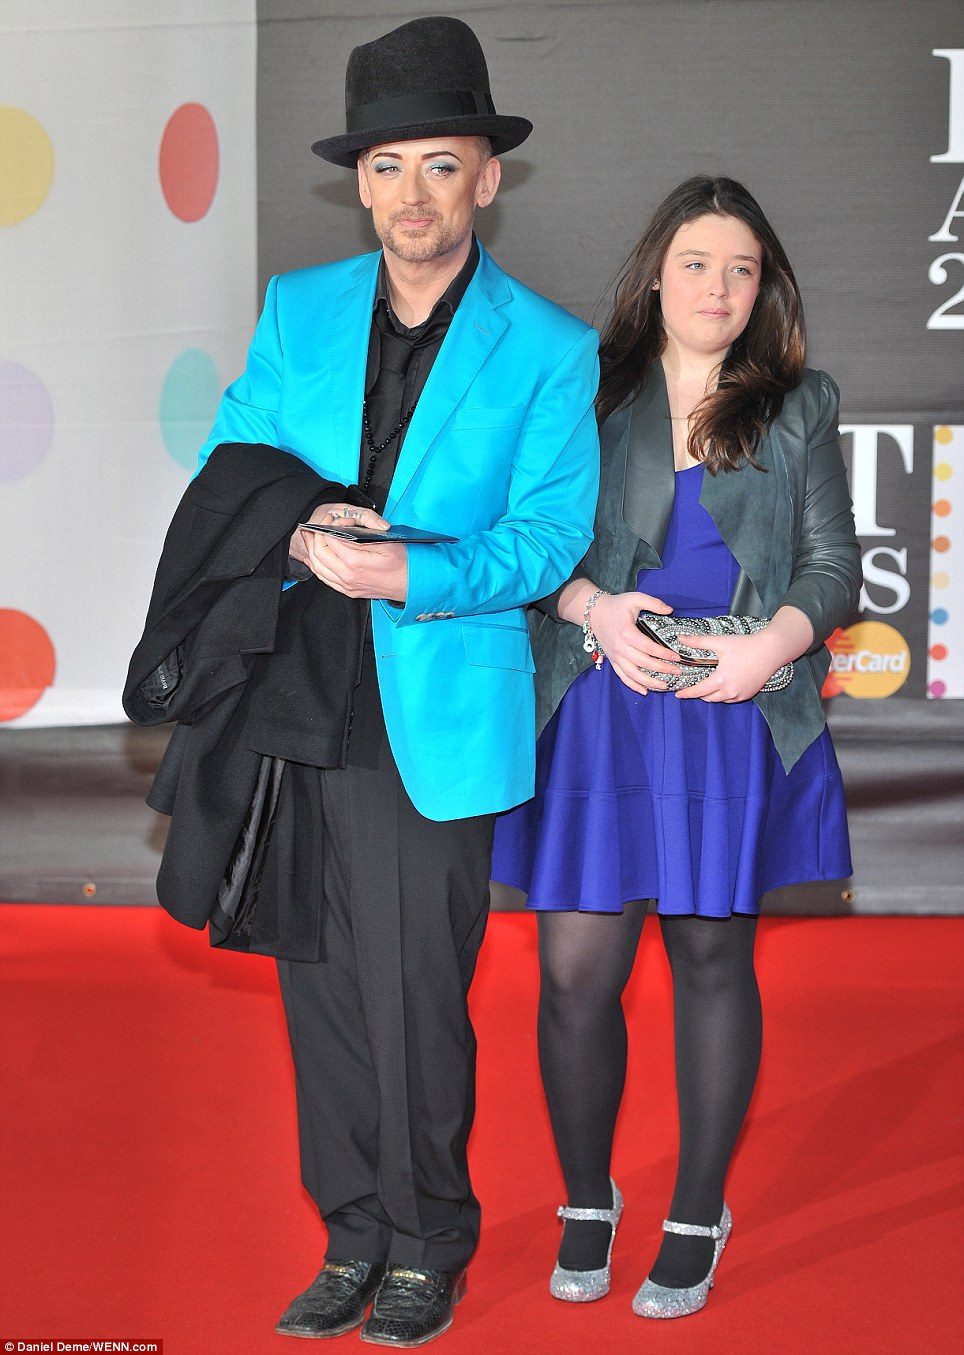 Mini Boy George: George O'Dowd showed off his new slimline look in a bright blue coat, co-ordinating with his niece who he brought along as his date to the proceedings